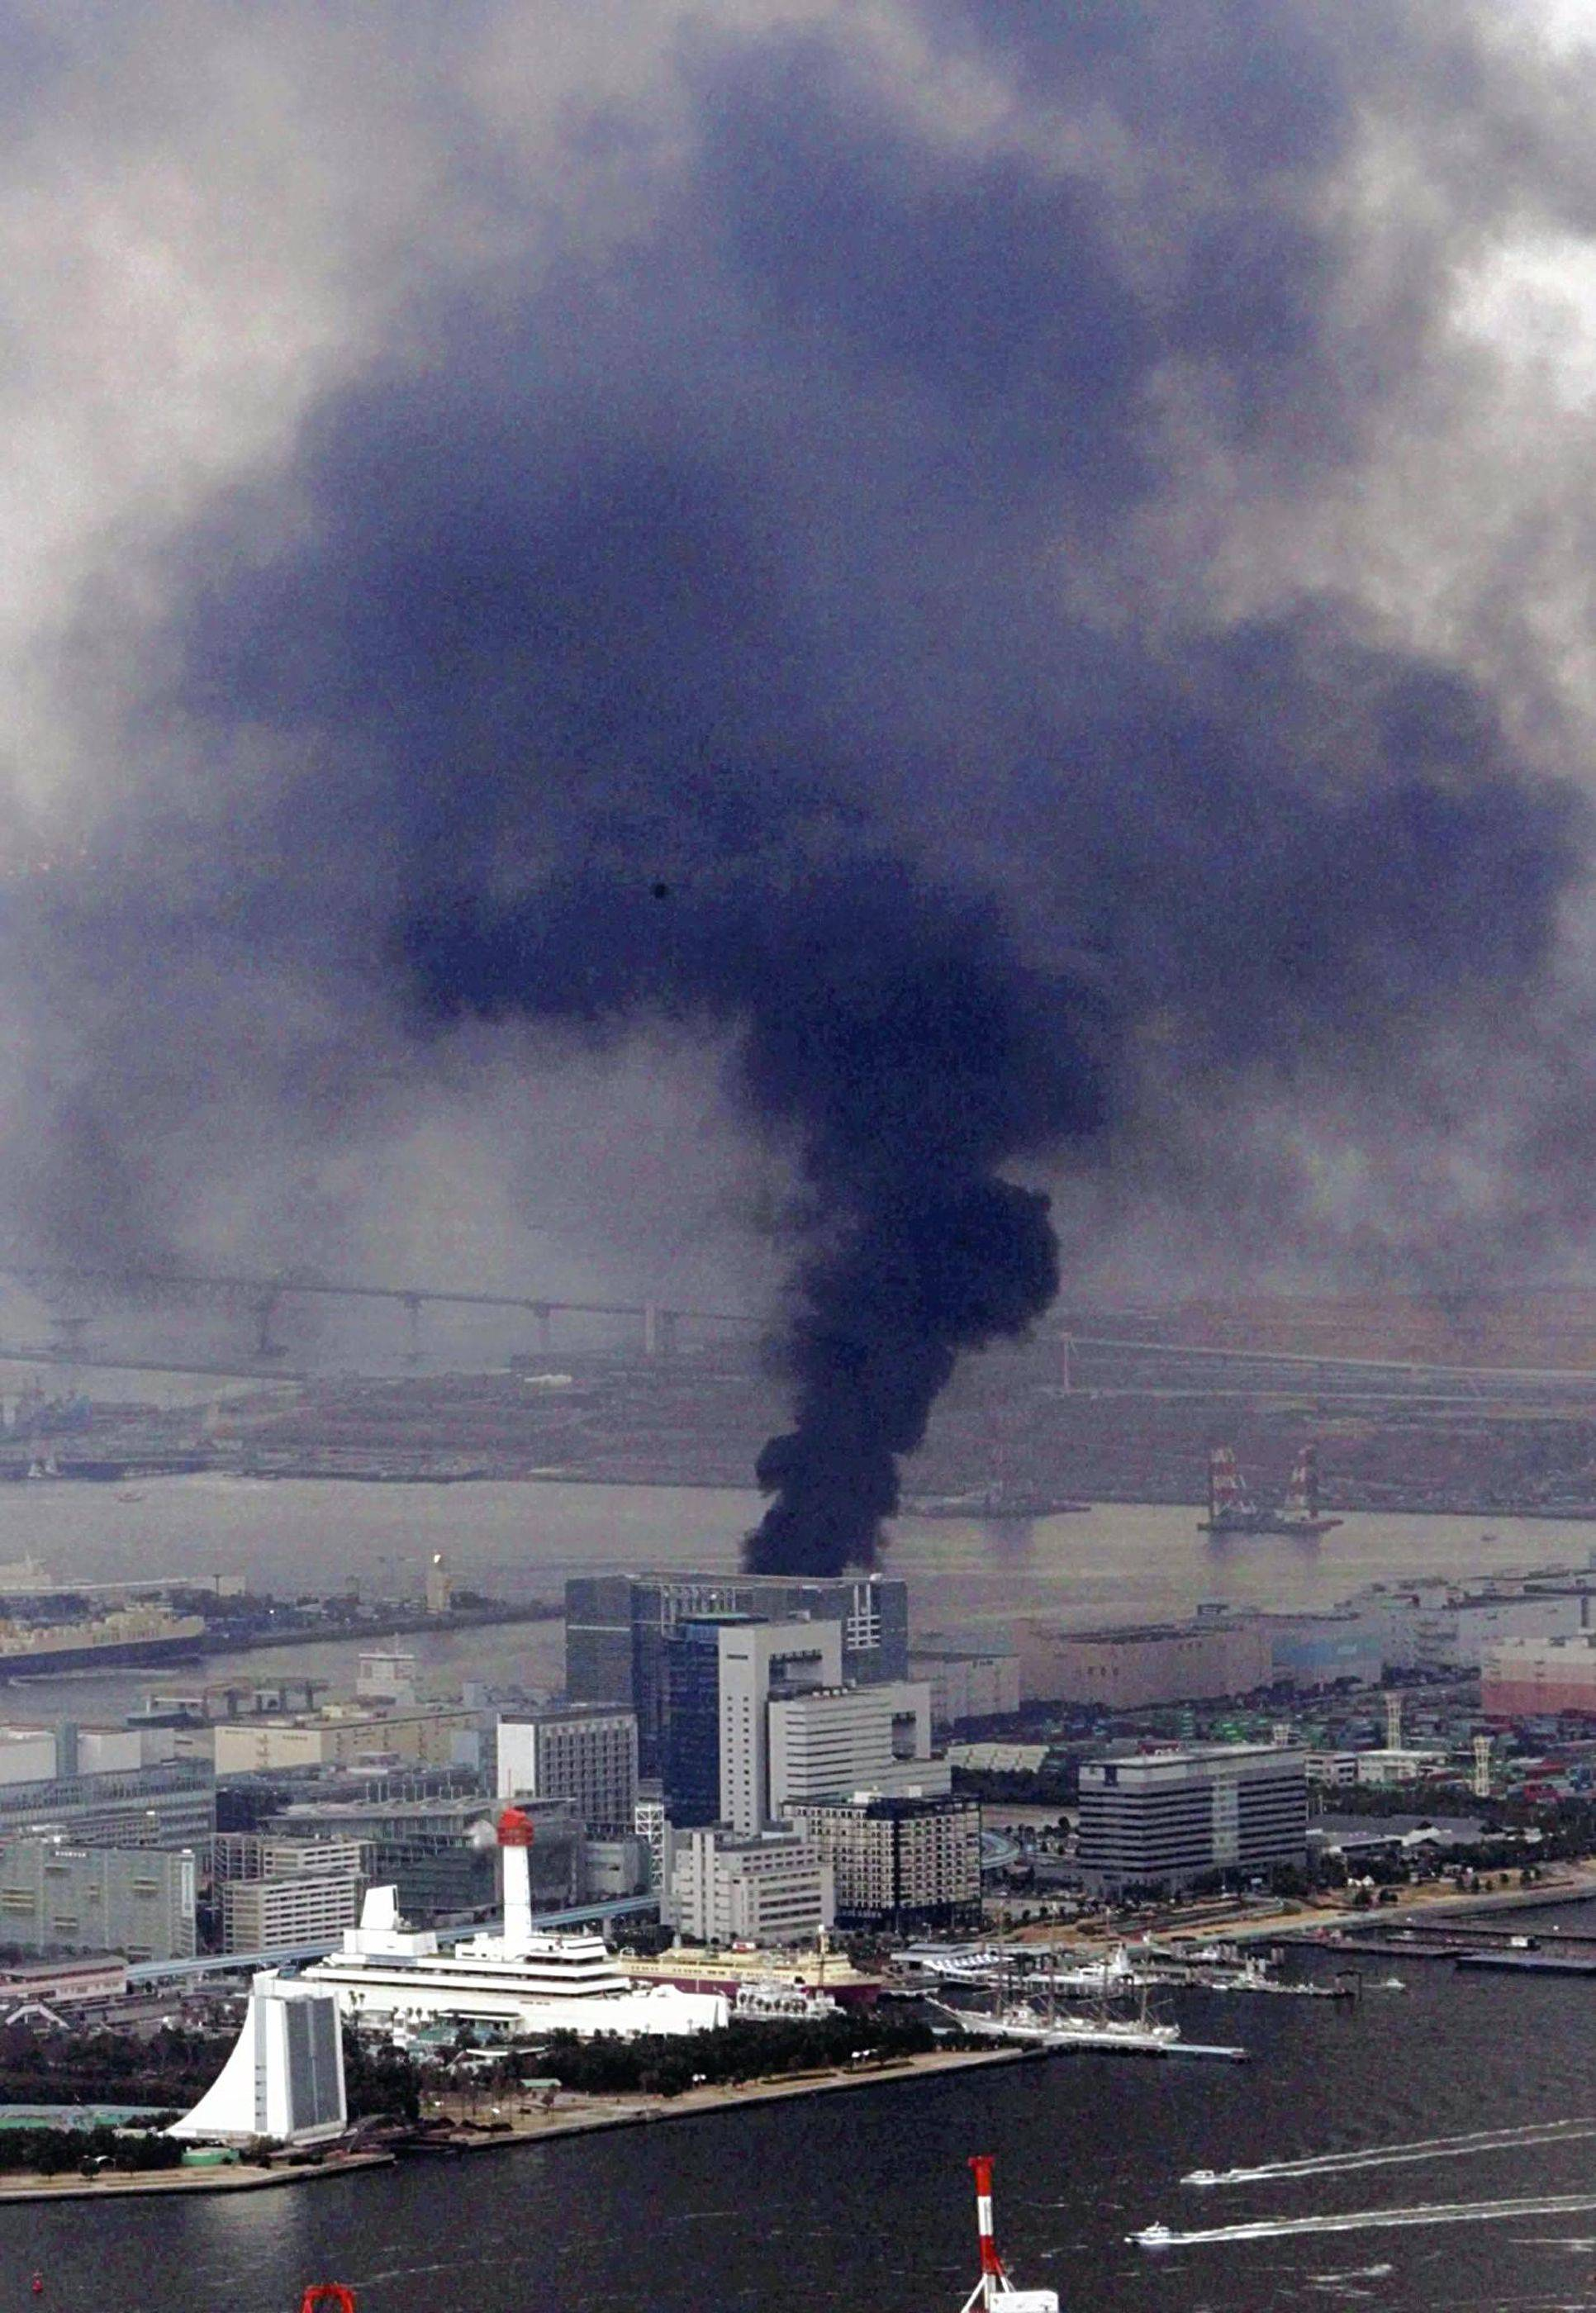 Black smoke rises from a building in Tokyo's Odaiba bay area after strong earthquakes hit Japan Friday.